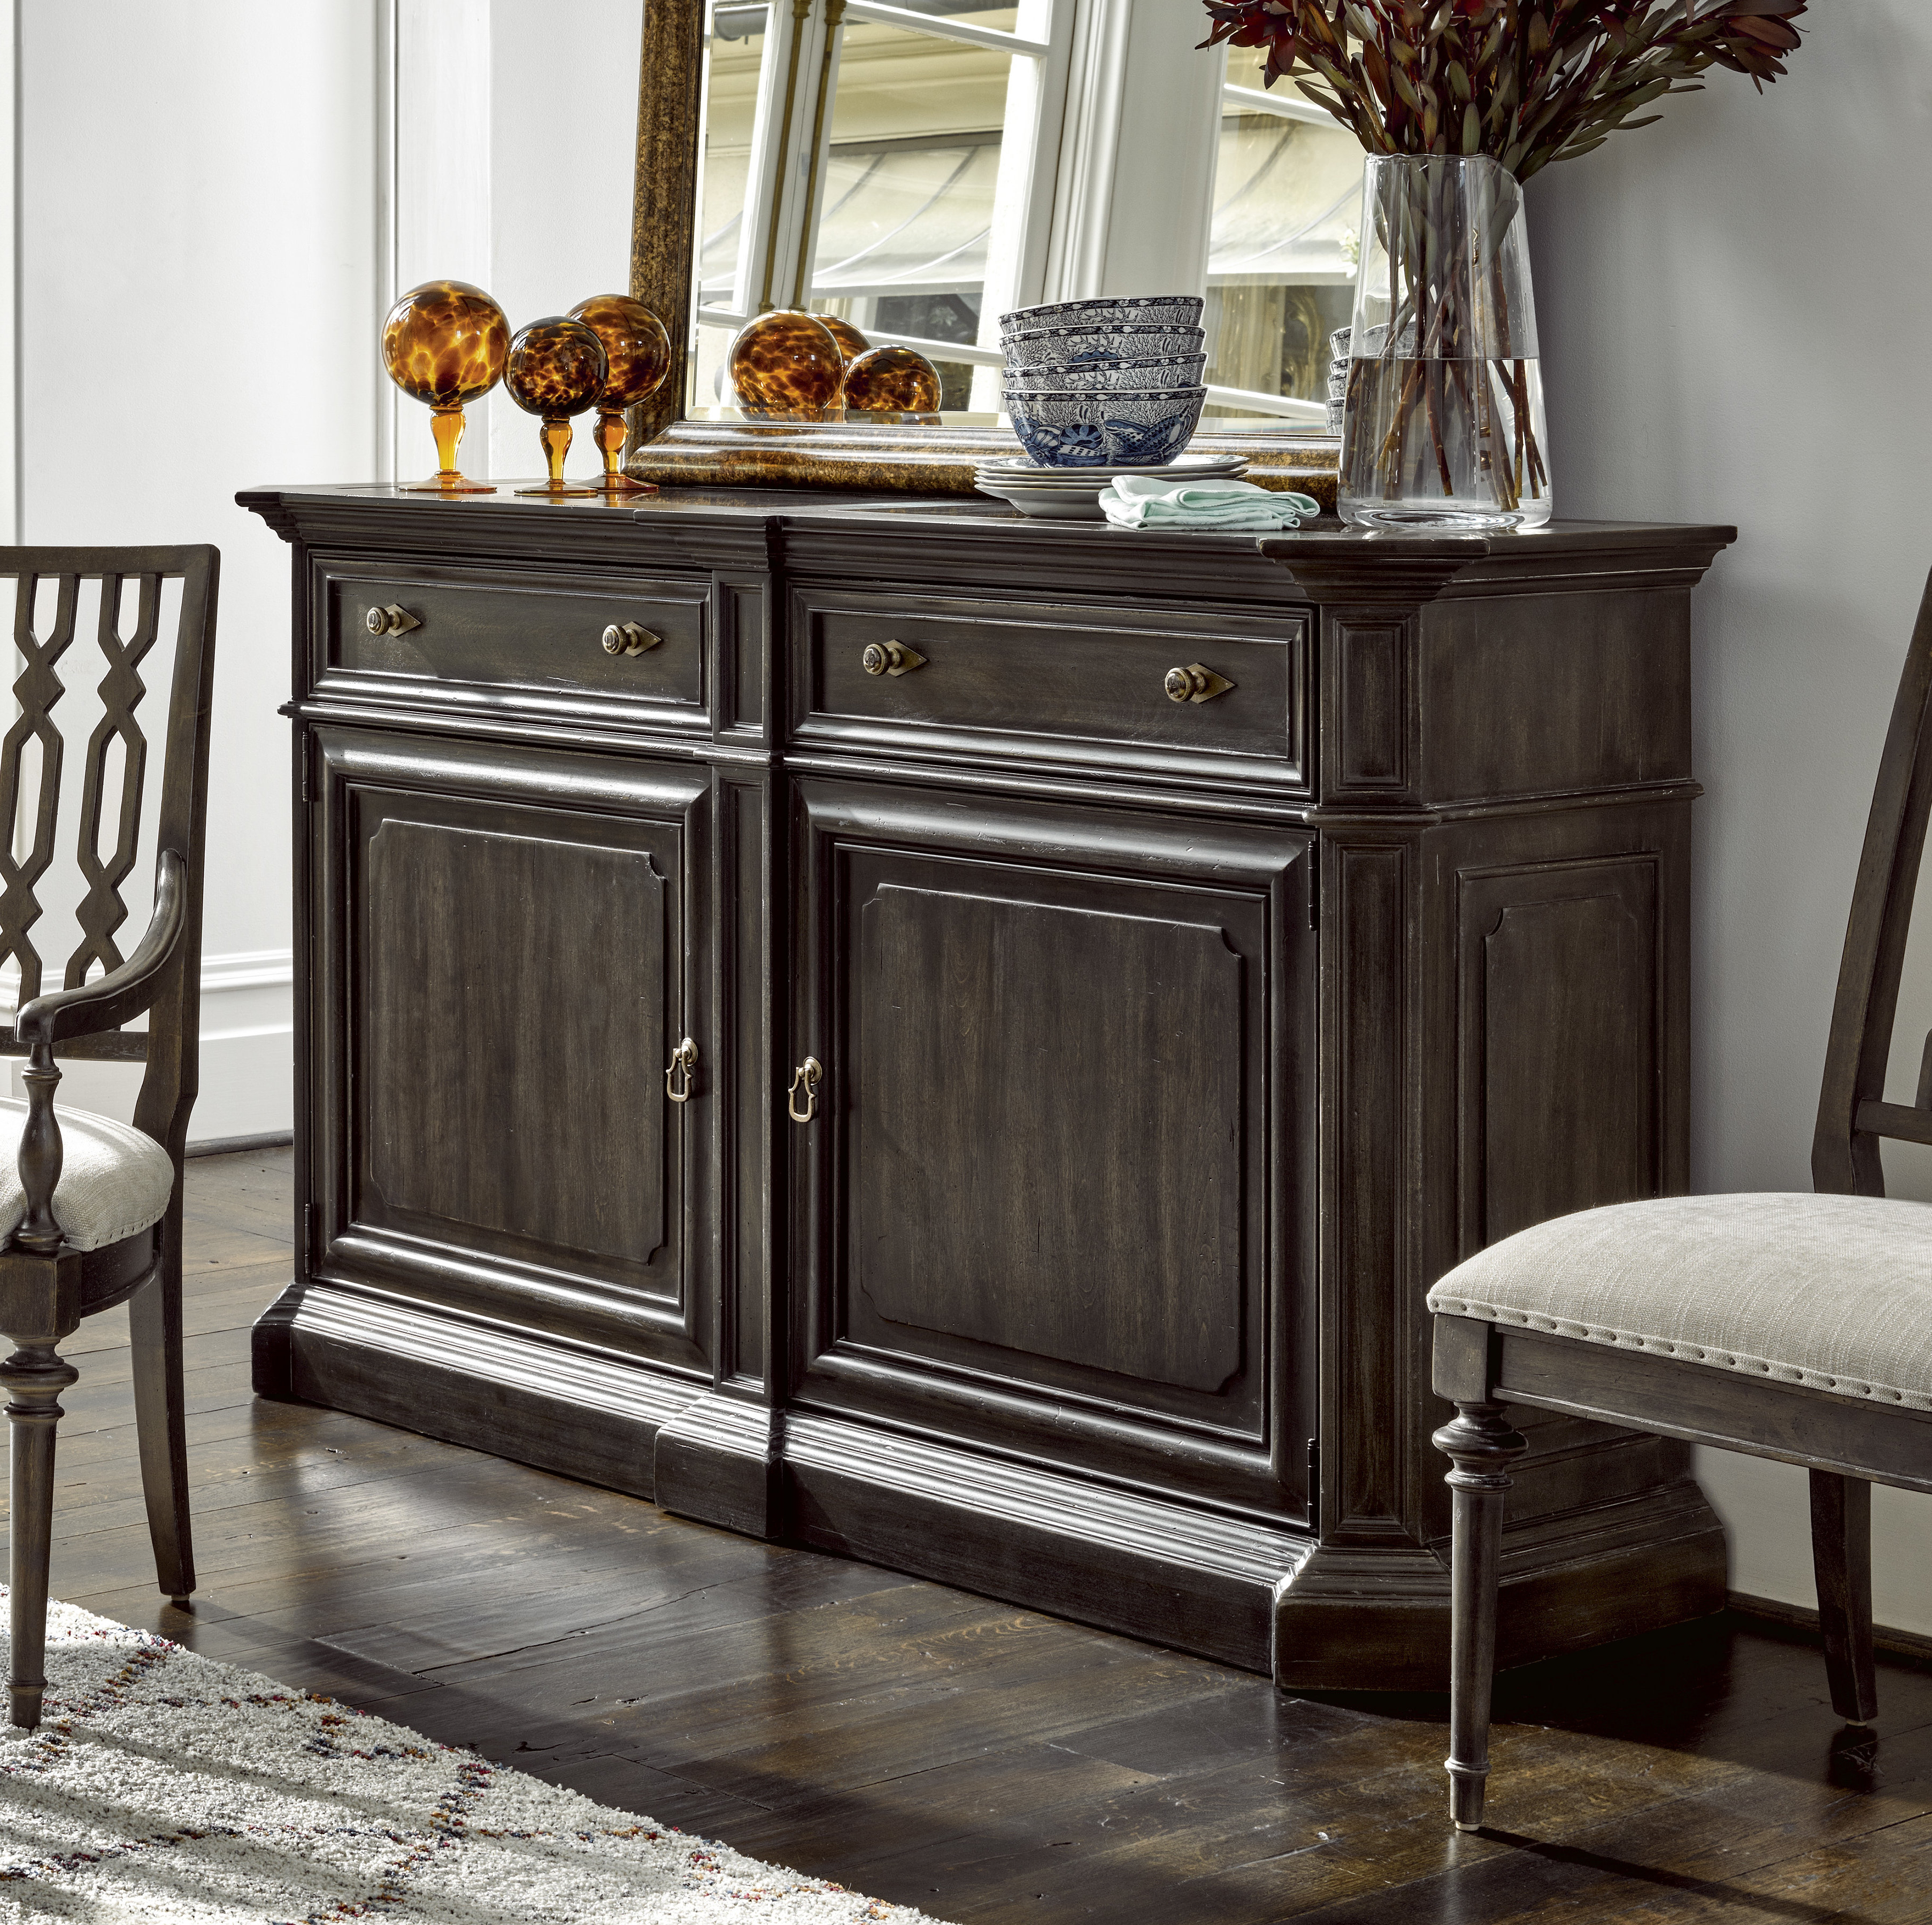 Trendy Chaucer Credenza Pertaining To Hewlett Sideboards (View 9 of 20)